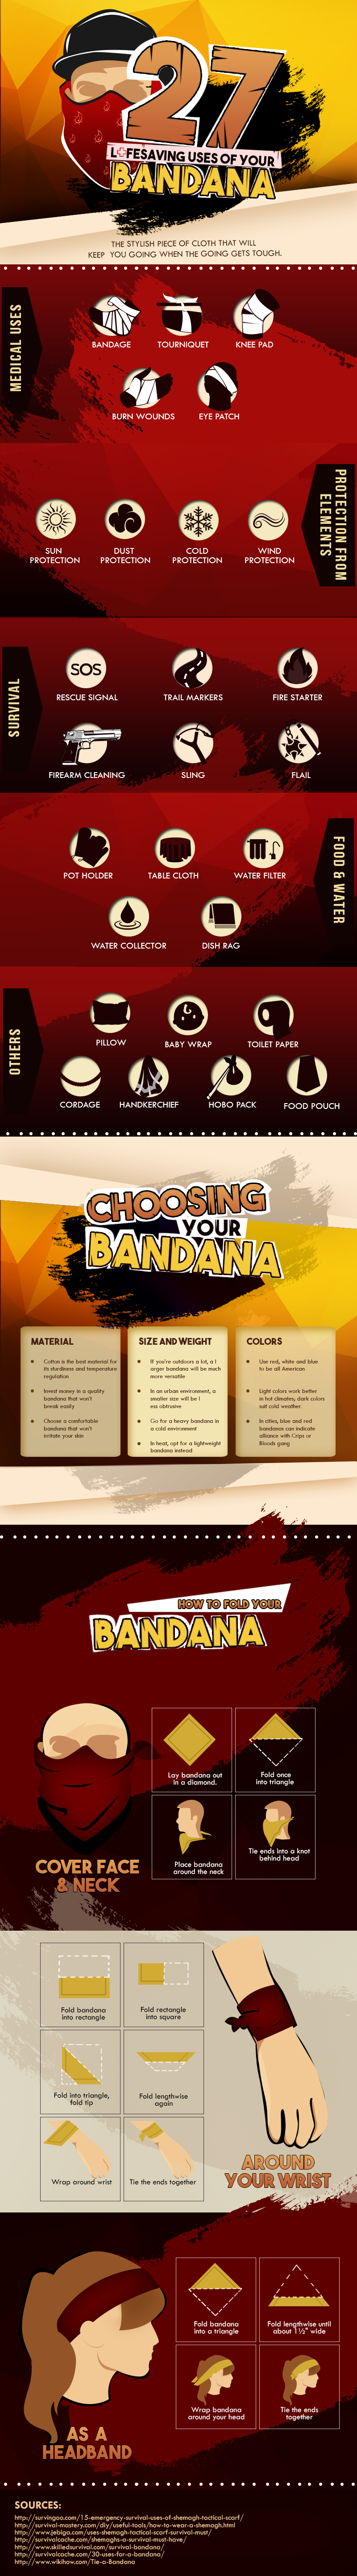 27 Ways the Stylish Bandana Can Be Used – Including Lifesaving! - Infographic